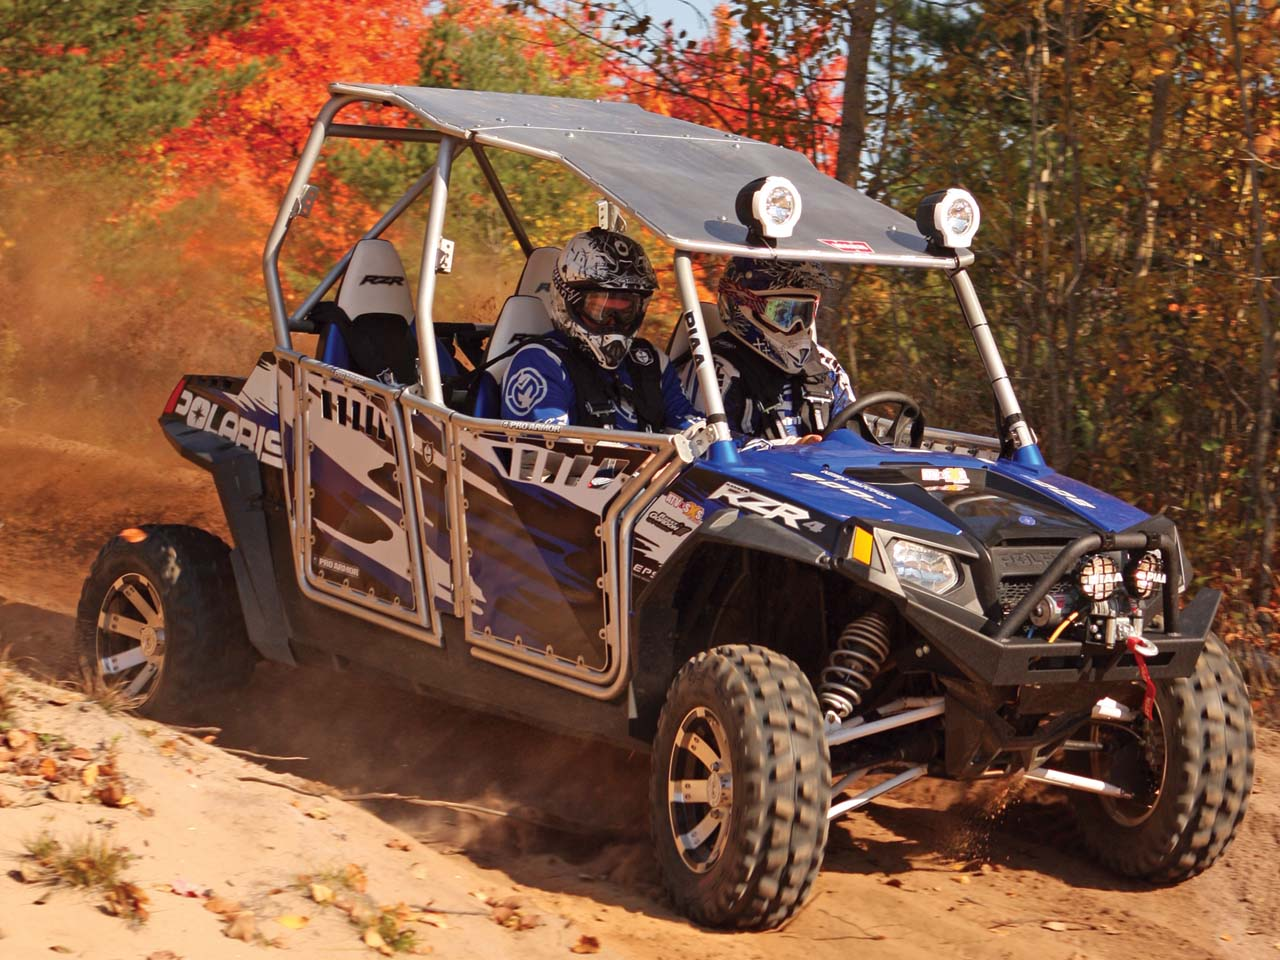 Mud Buddy Wiring Diagram Z Atilde Frac Ndapp Bella R Diagrams Polaris Rzr Upgrade Accessories Review Atv Illustrated Everyone Loves The Look Of Our Rzr4 Bumper